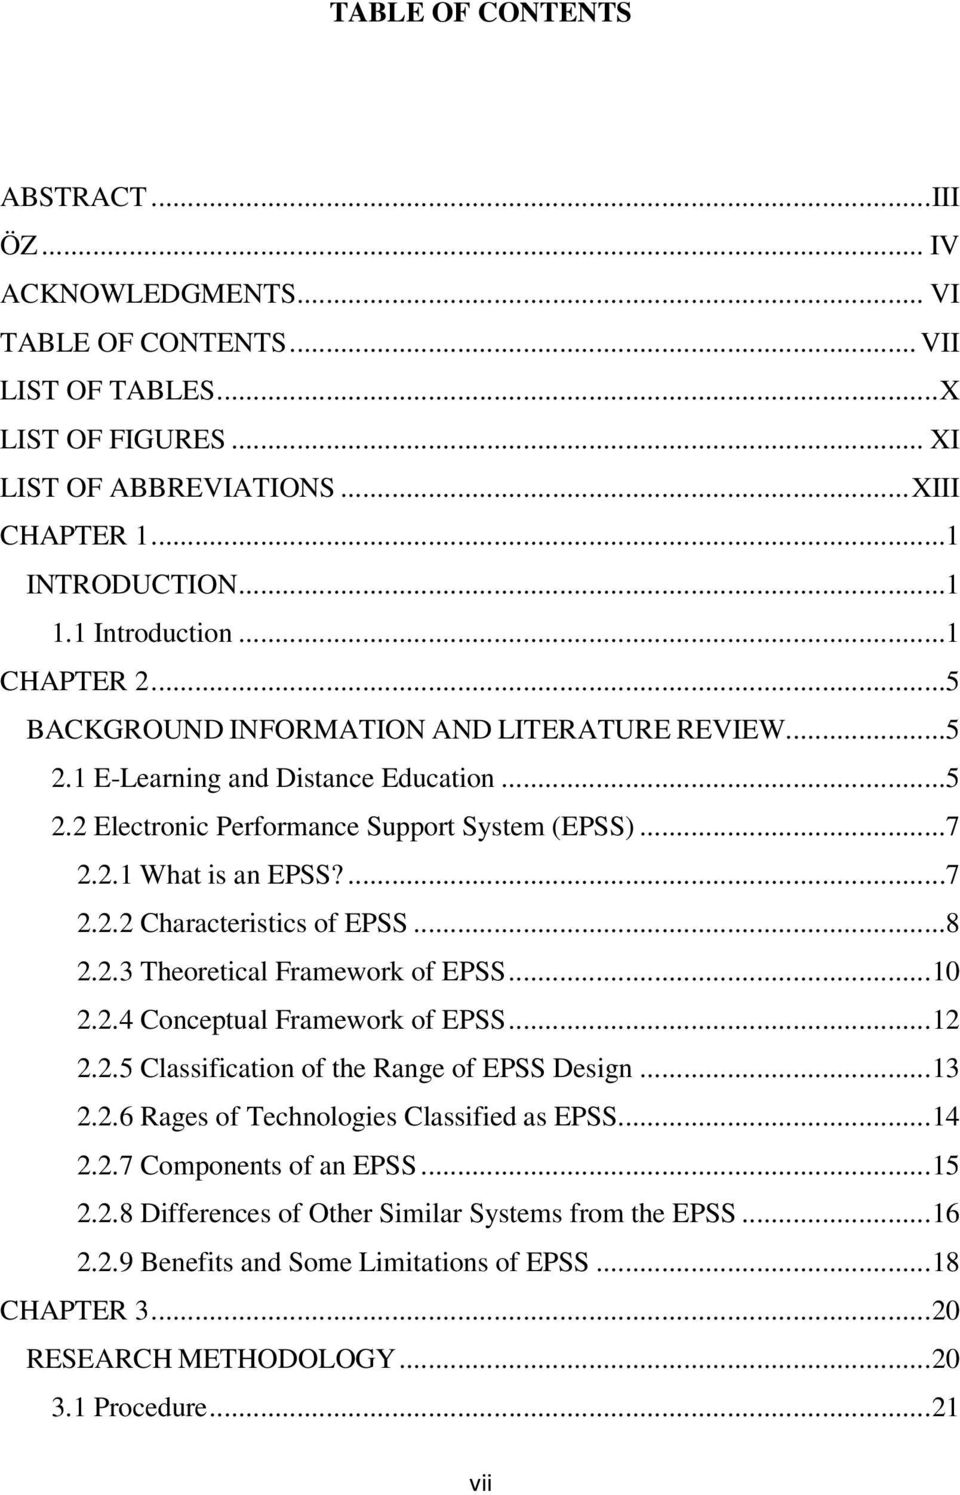 ...7 2.2.2 Characteristics of EPSS...8 2.2.3 Theoretical Framework of EPSS... 10 2.2.4 Conceptual Framework of EPSS... 12 2.2.5 Classification of the Range of EPSS Design... 13 2.2.6 Rages of Technologies Classified as EPSS.